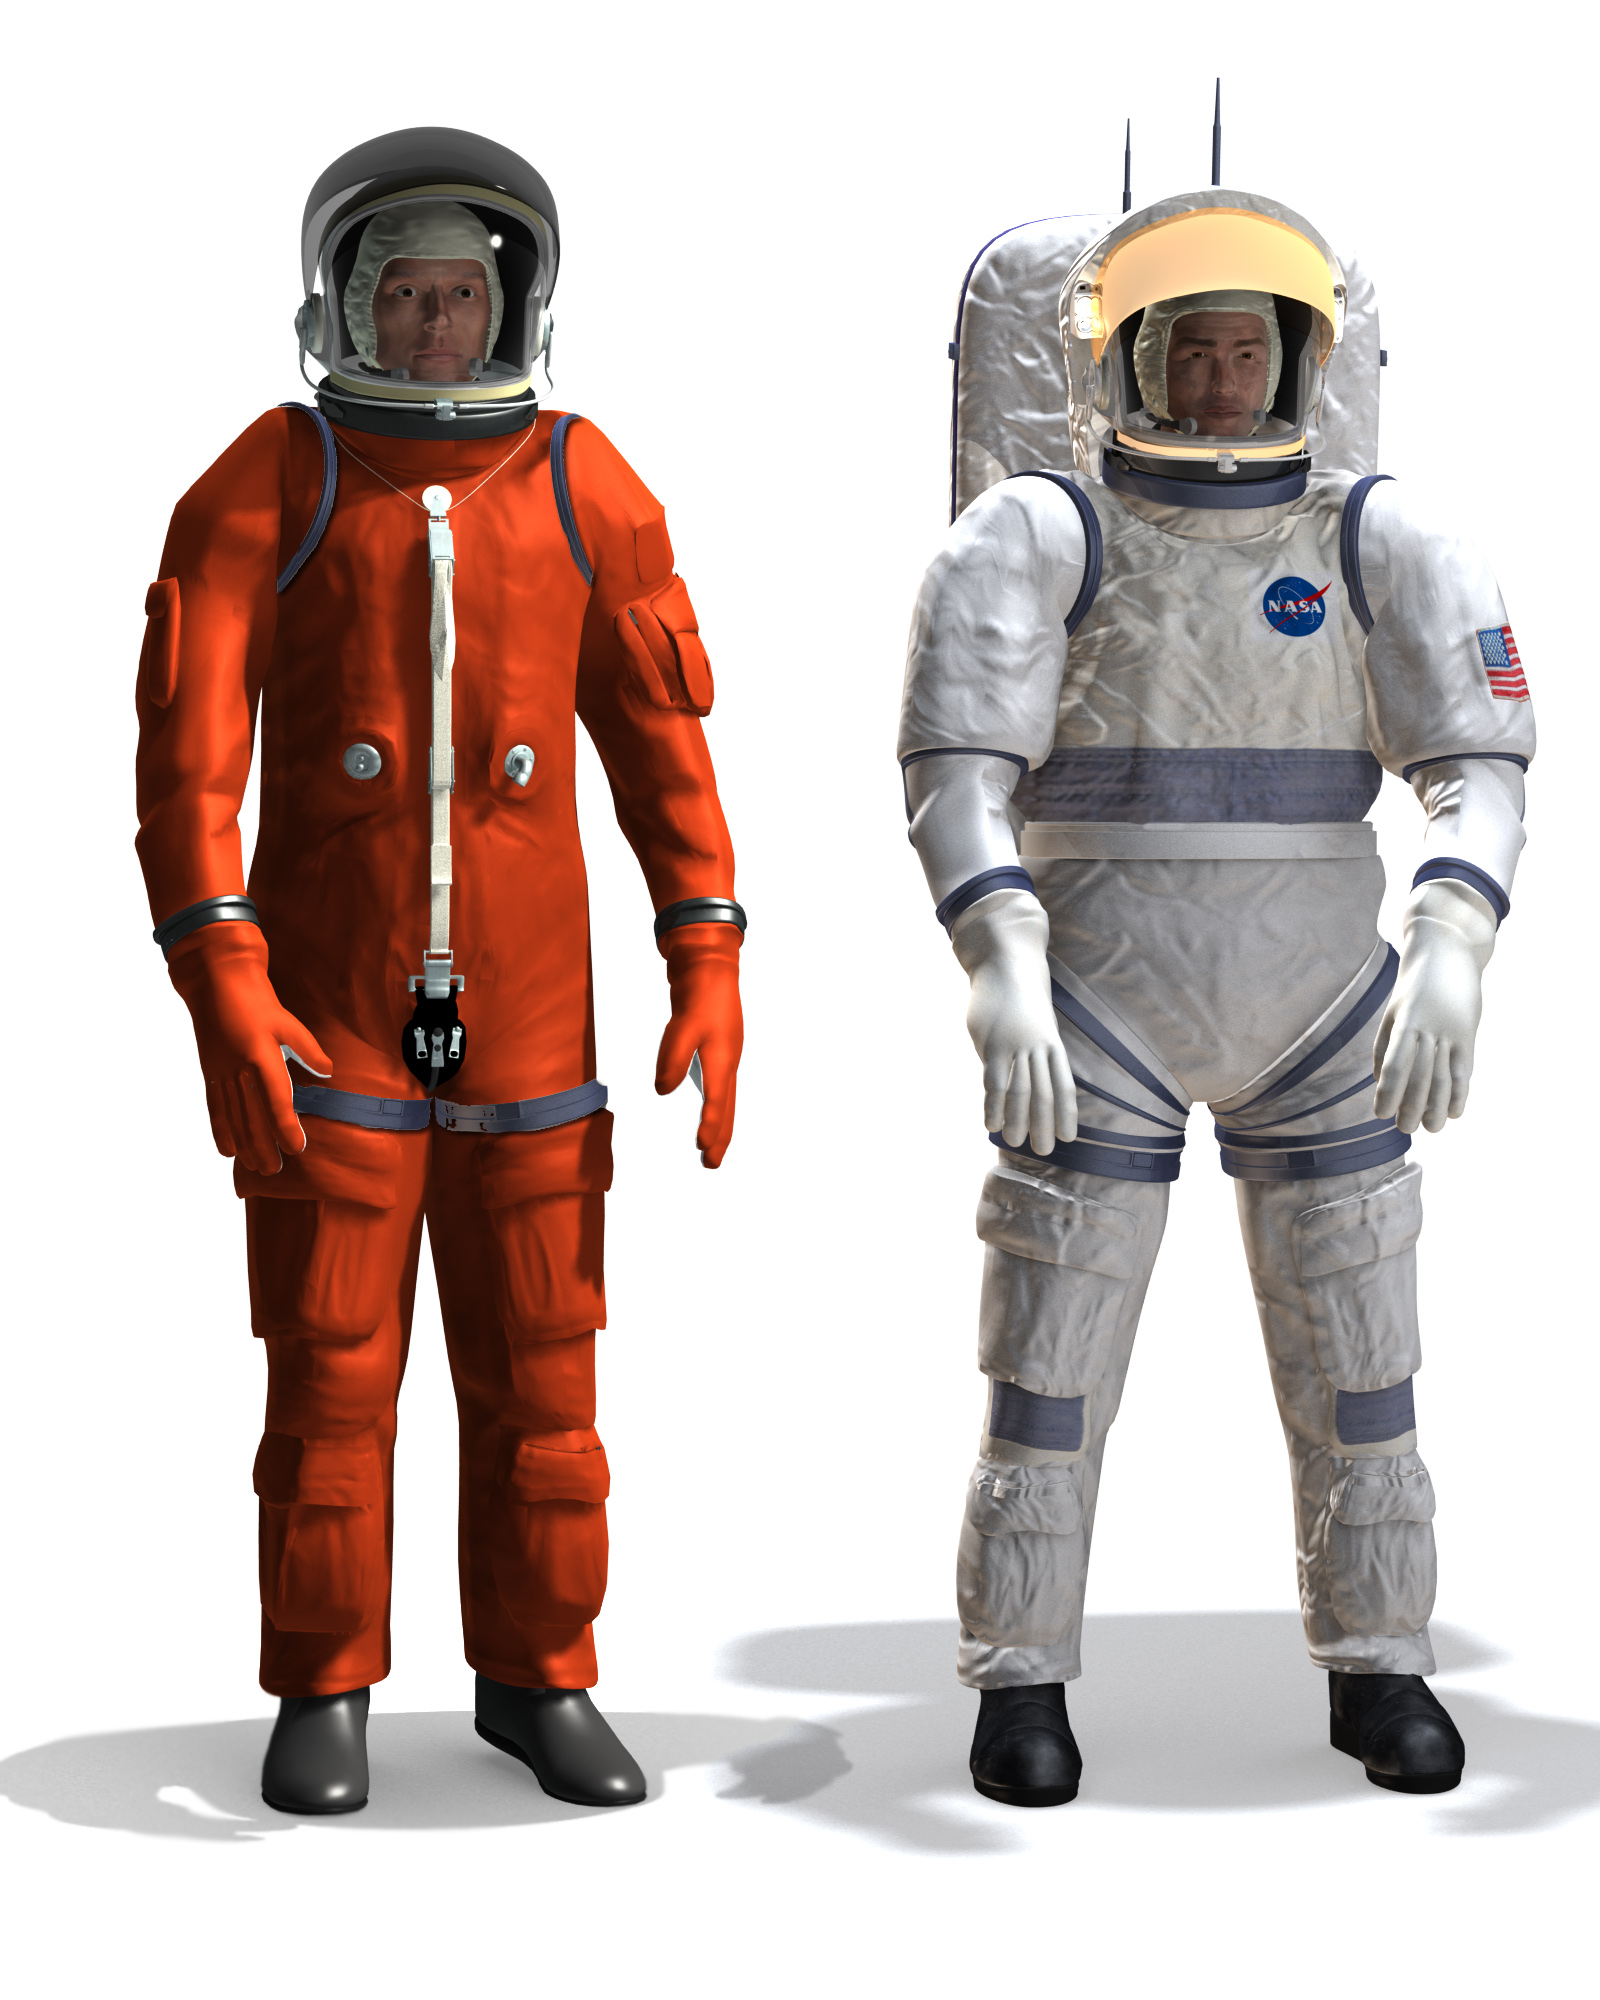 Image result for nasa space suit""